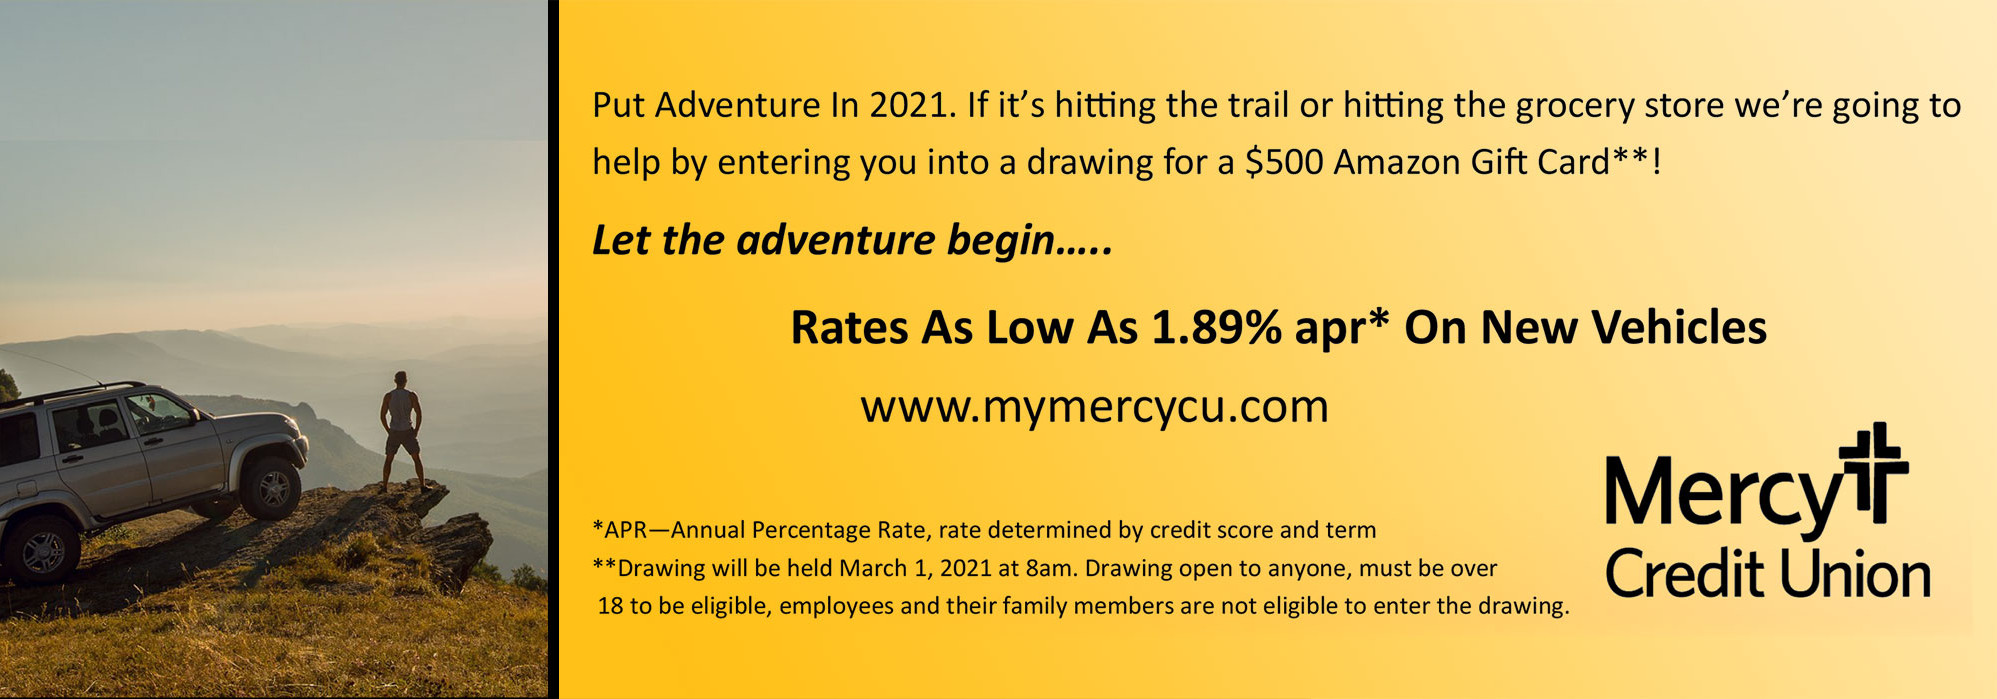 Rates as low as 1.89% APR on new vehicles